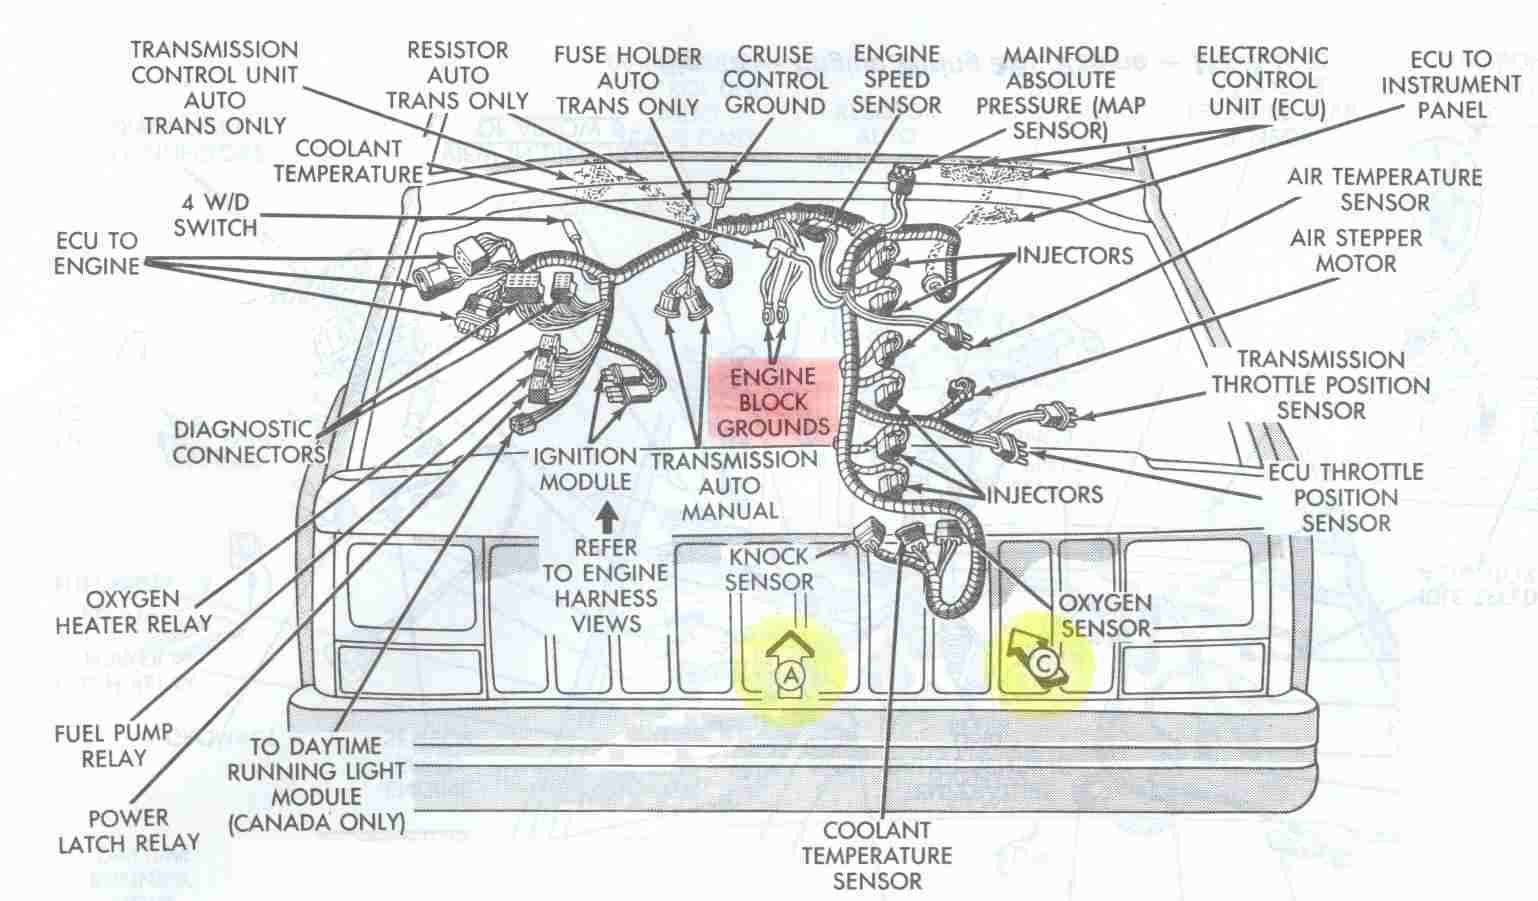 ab0134a7d9e021431187af597eb4aeca engine bay schematic showing major electrical ground points for 1999 Jeep Grand Cherokee at soozxer.org